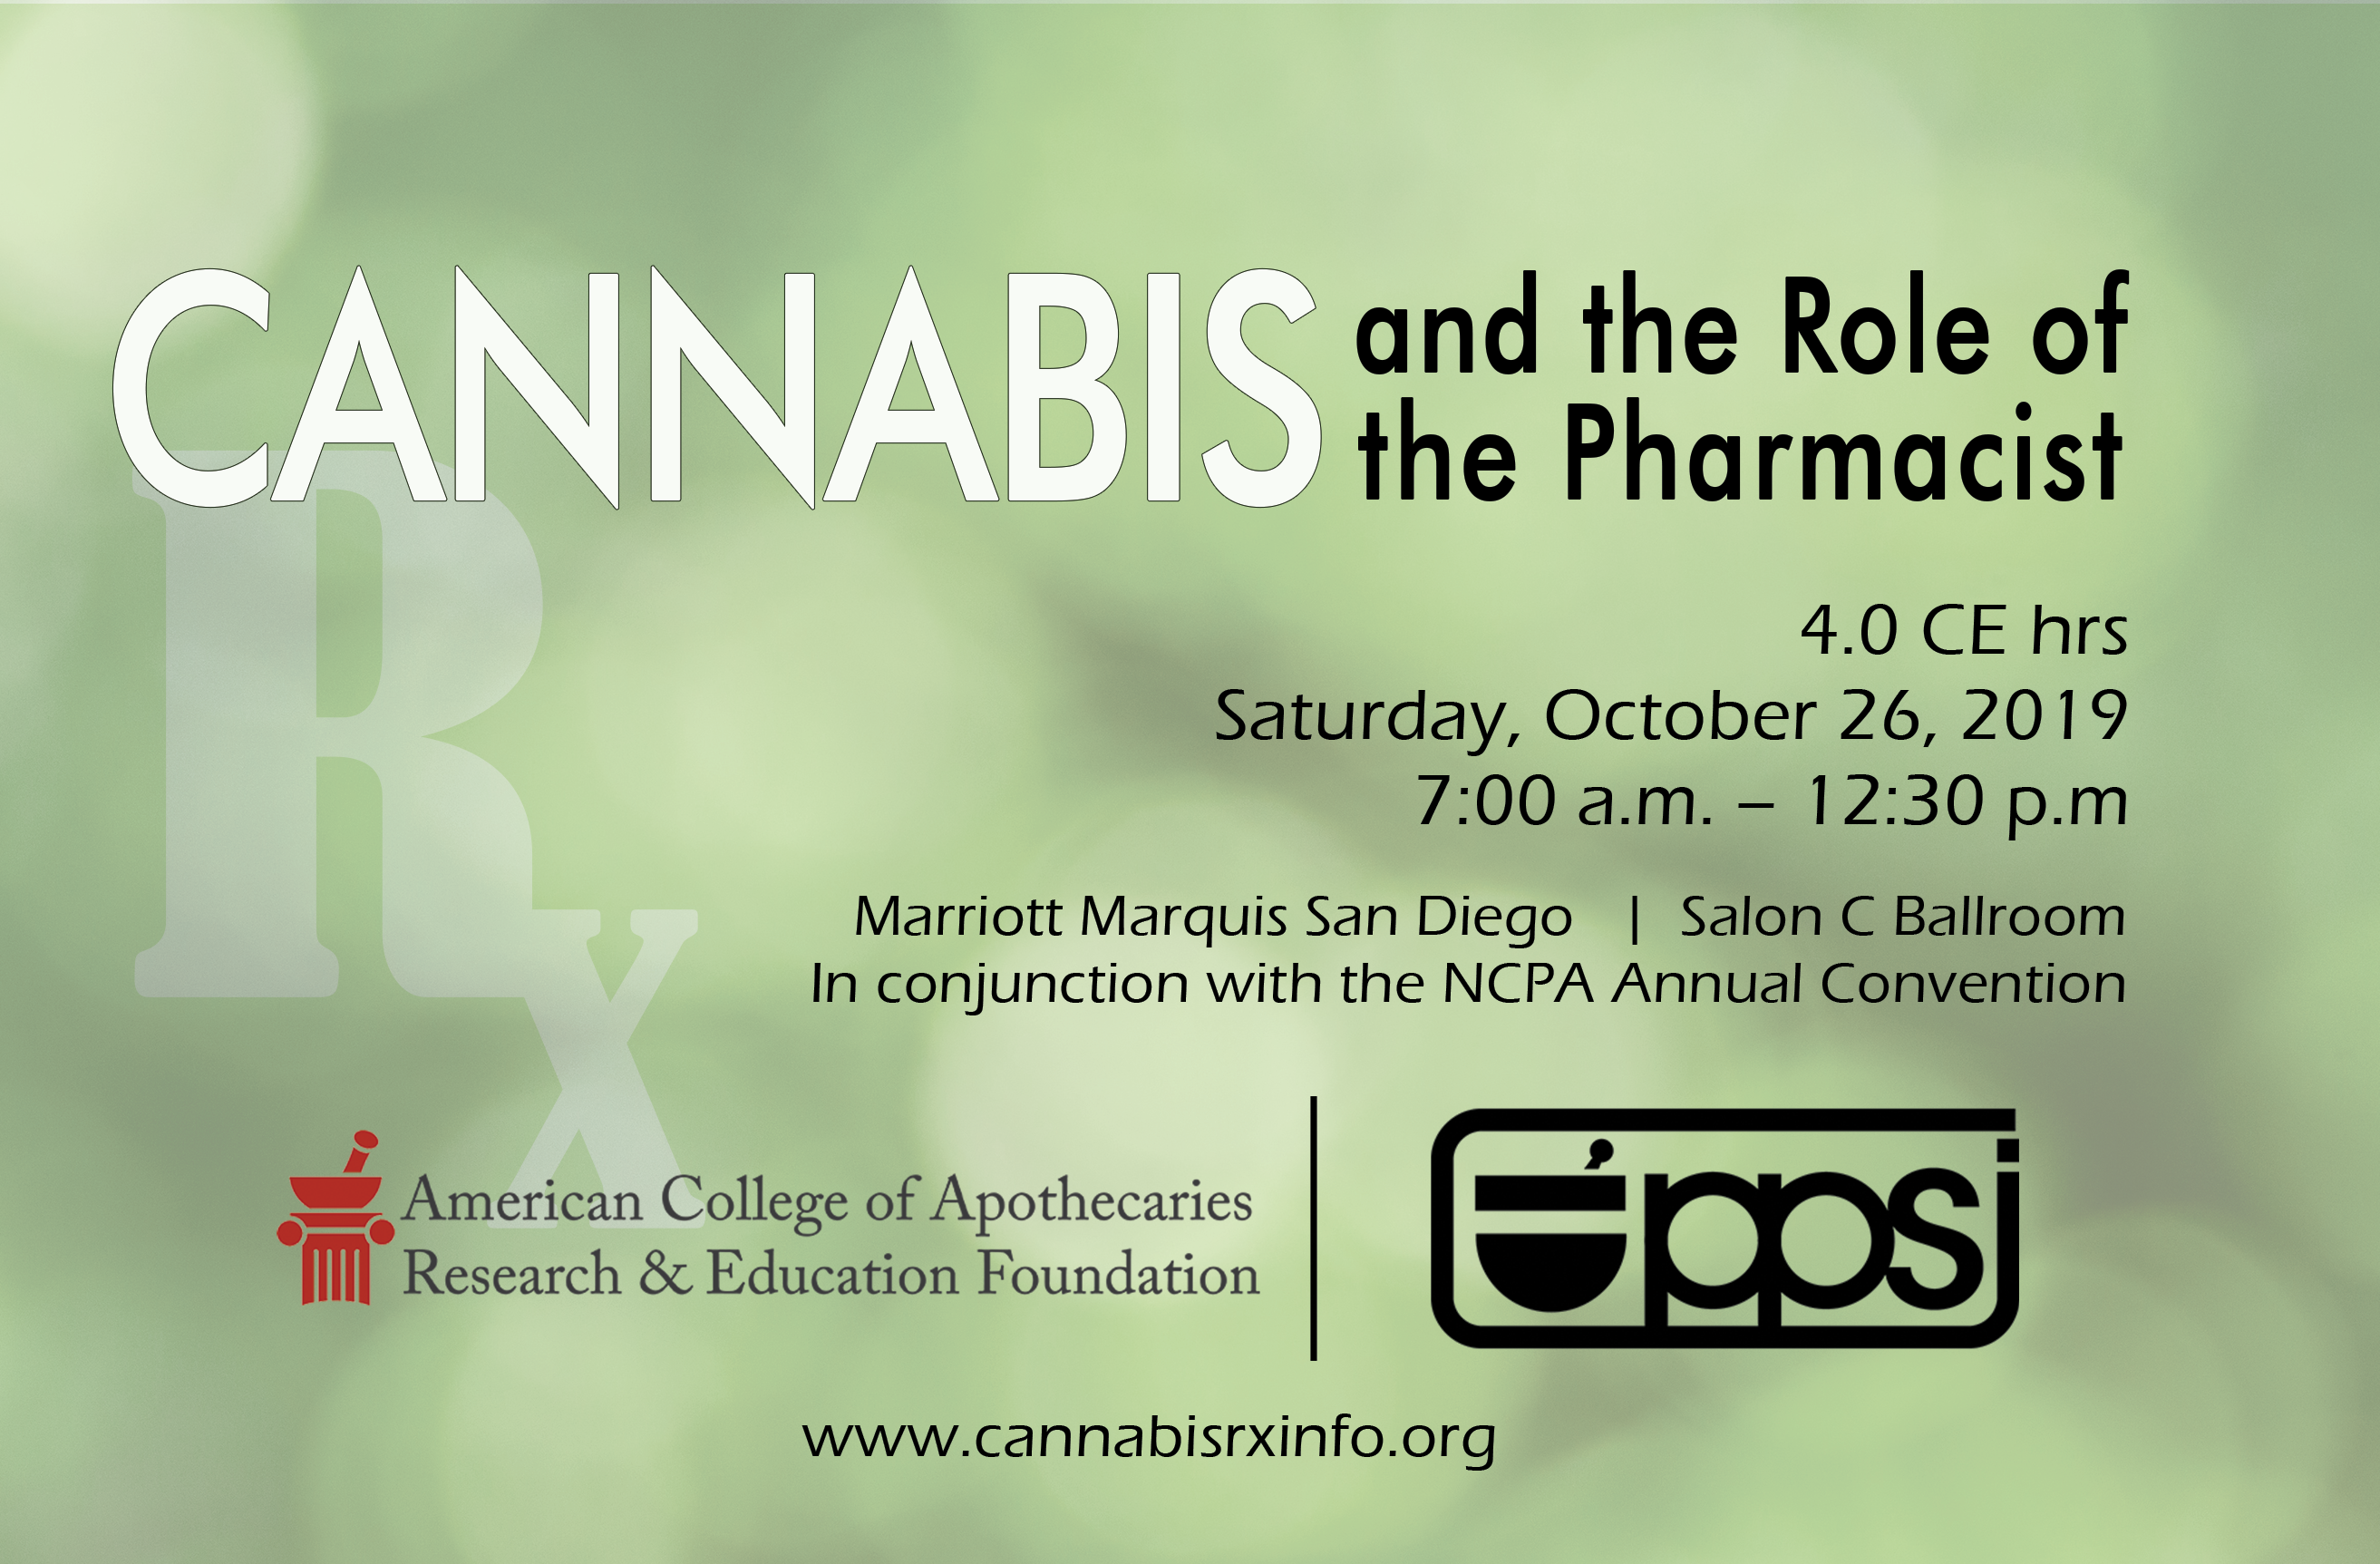 Cannabis Symposium